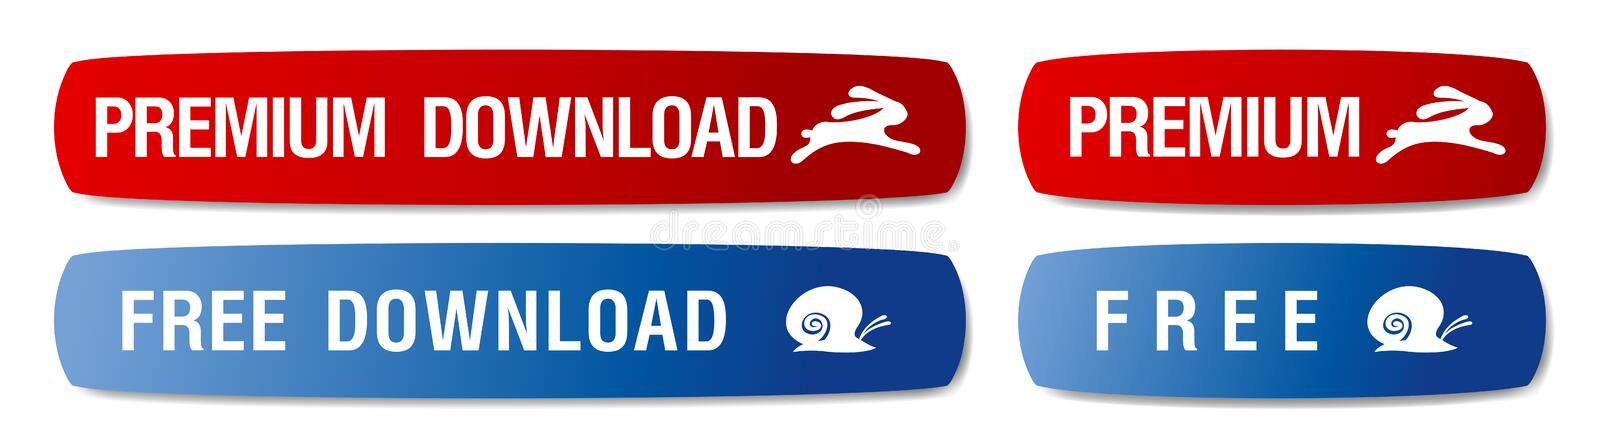 Download Buttons. Royalty Free Stock Images